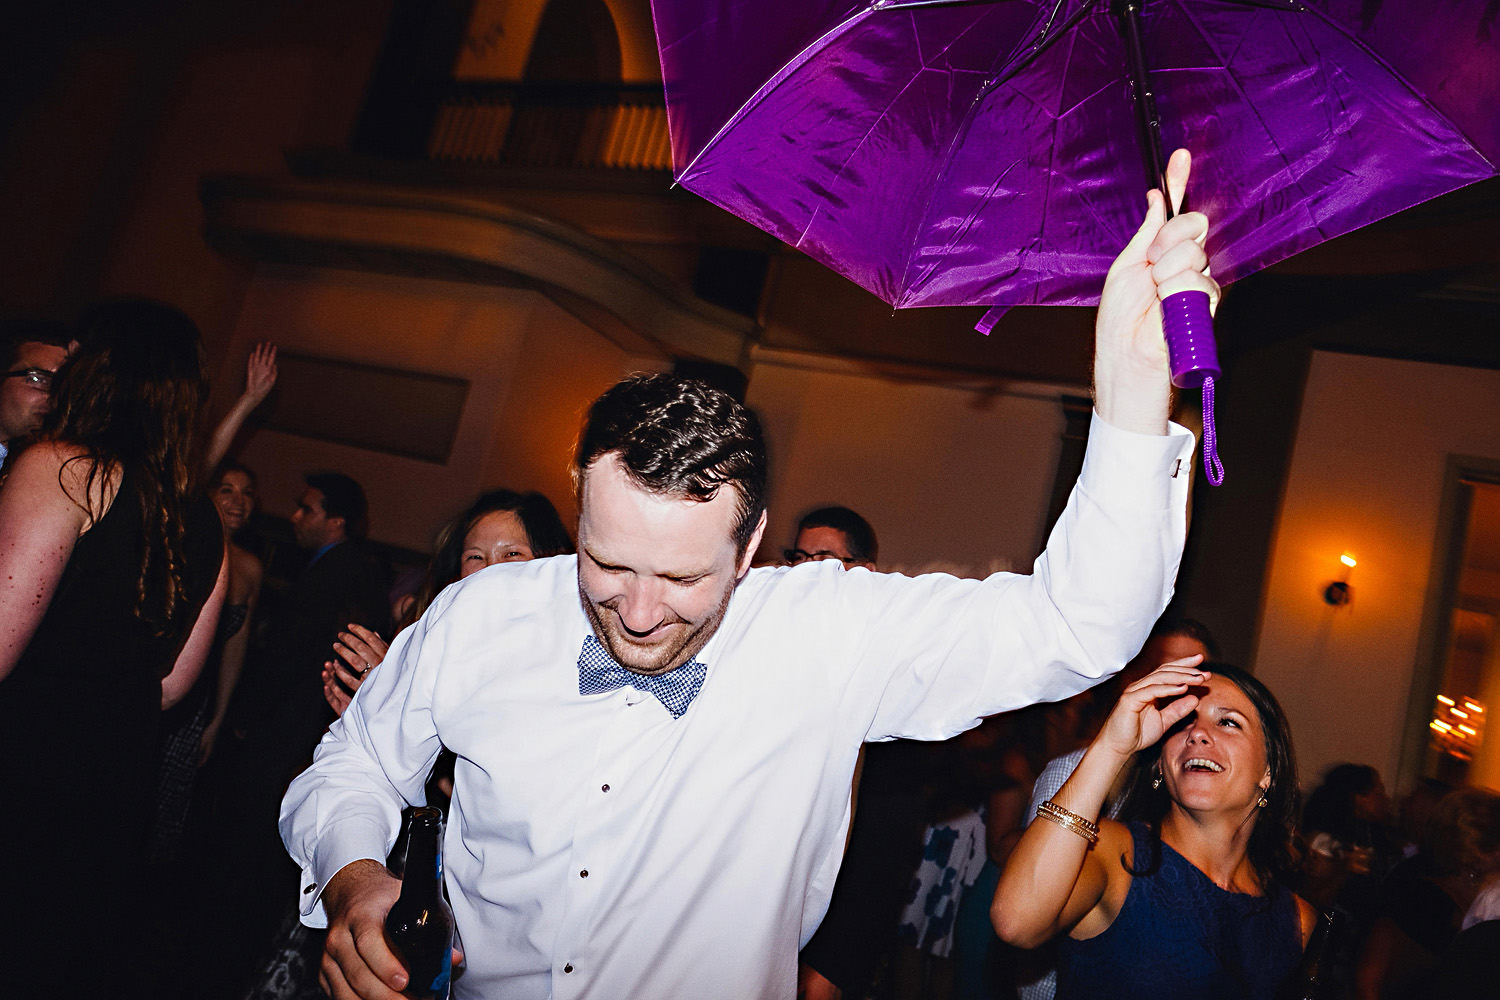 A groom dances with umbrella.